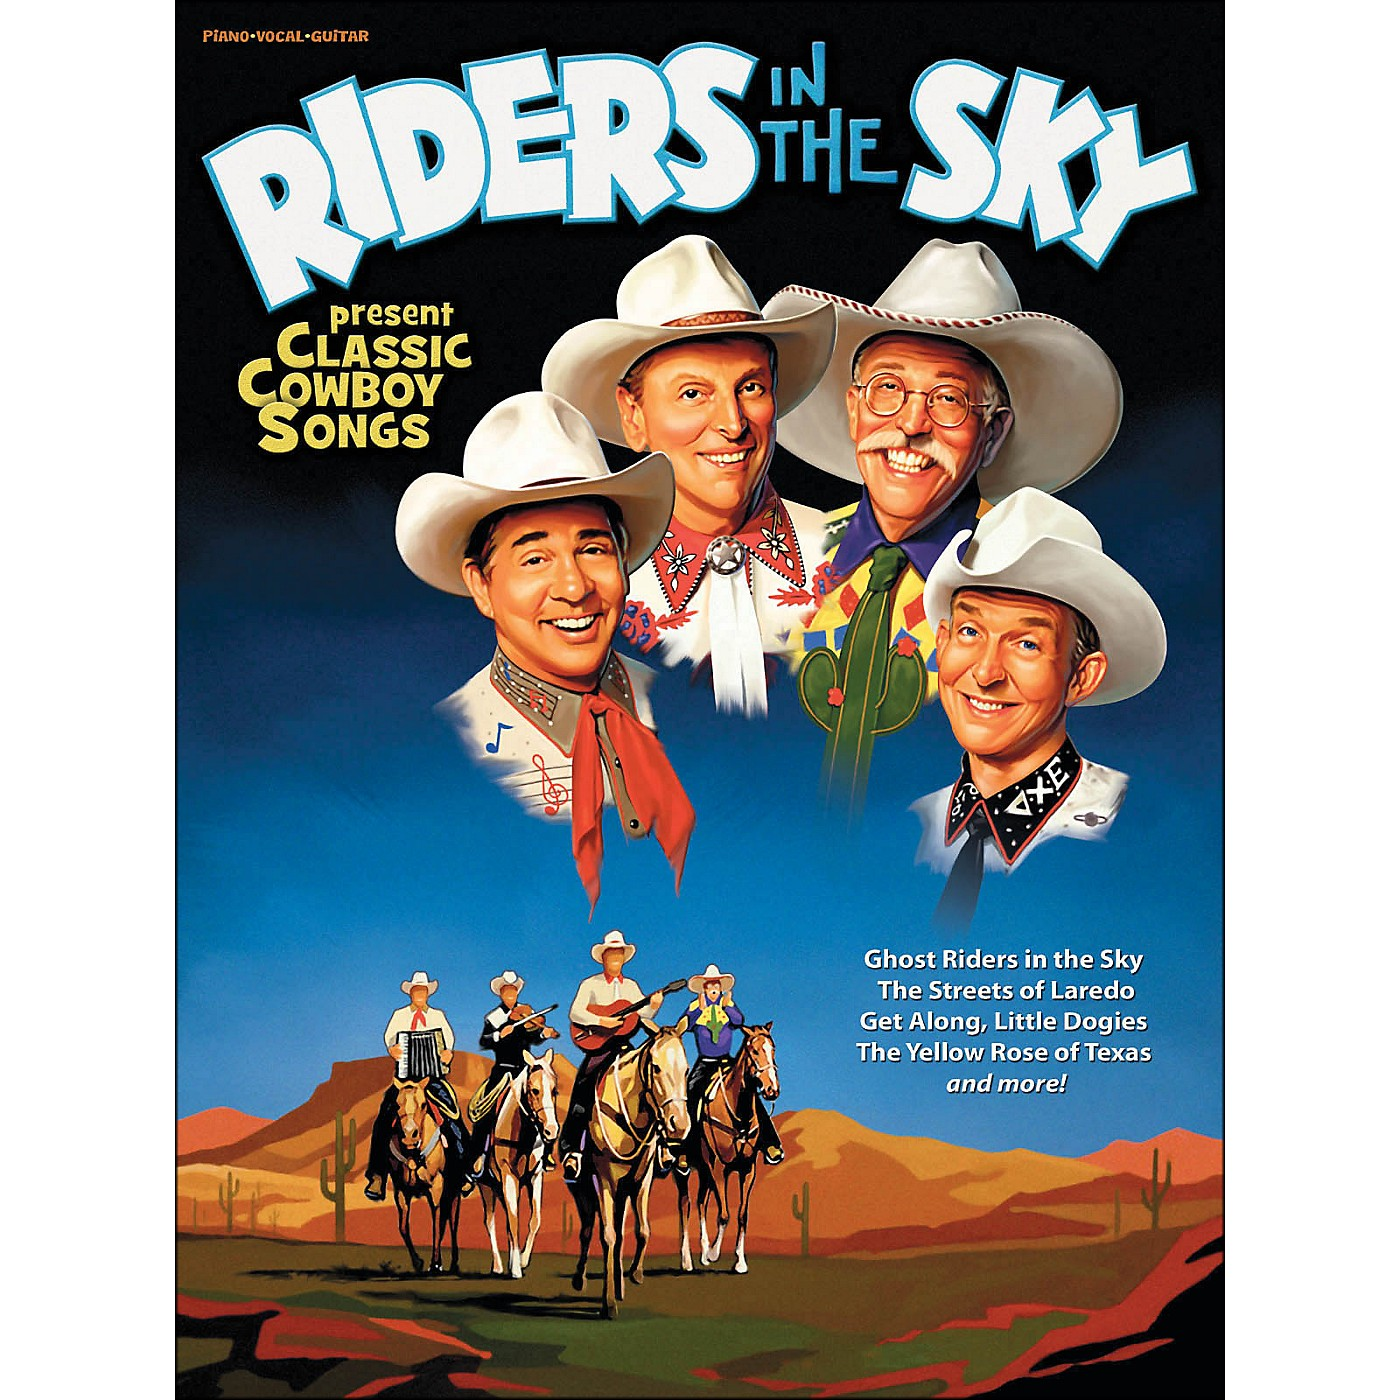 Hal Leonard Riders In The Sky Present Classic Cowboy Songs (Book) arranged for piano, vocal, and guitar (P/V/G) thumbnail